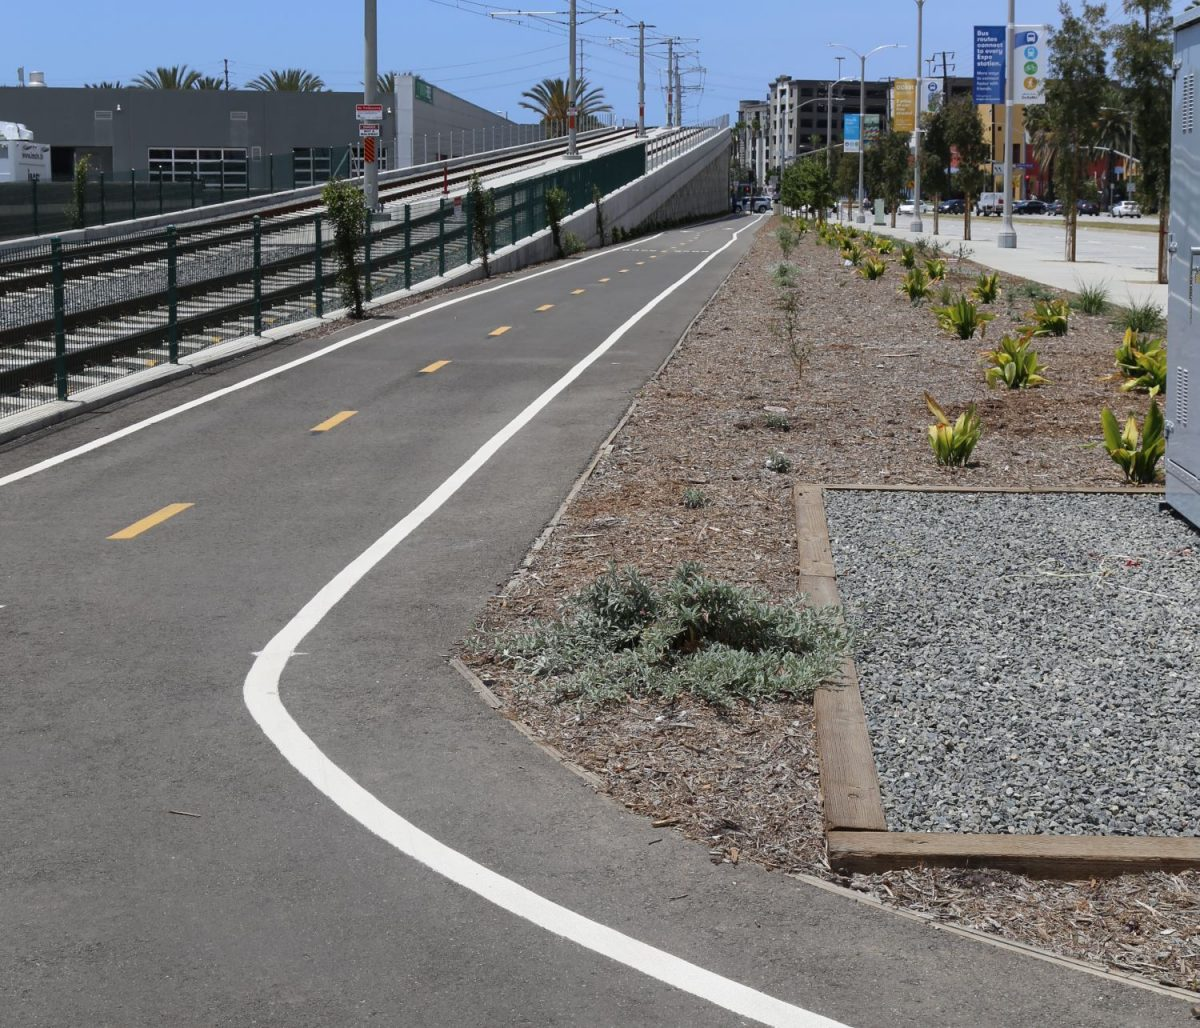 Bike path along the Metro line in Santa Monica